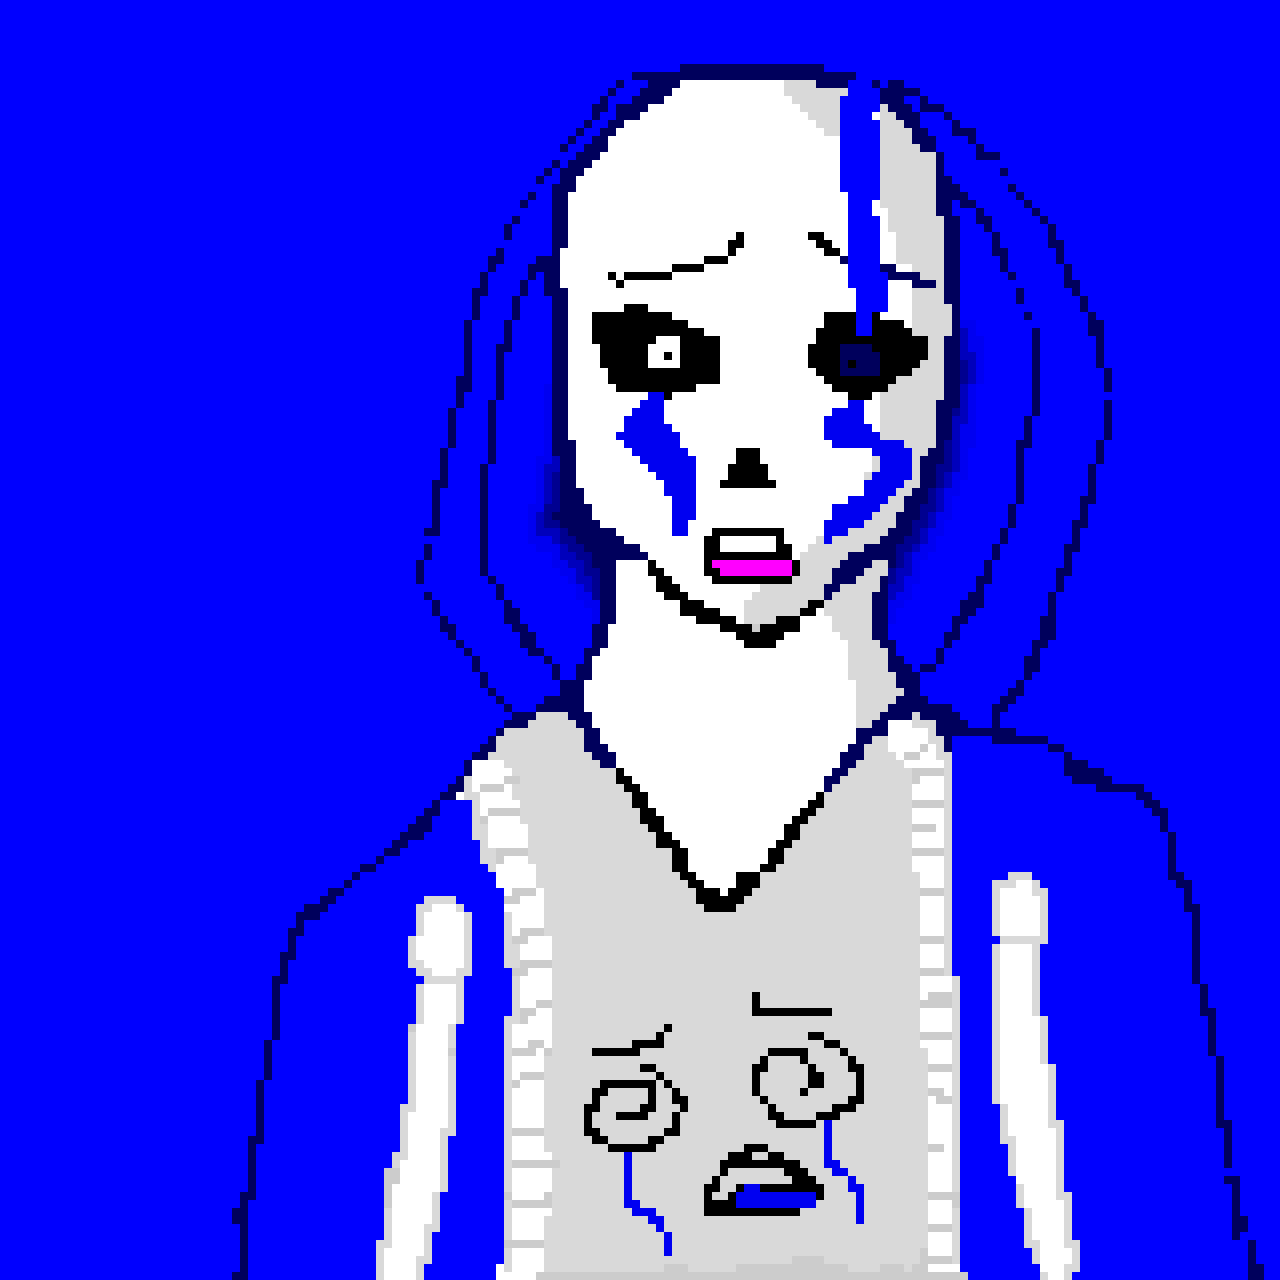 sad sans(the other one is heartbroken as you can tell)